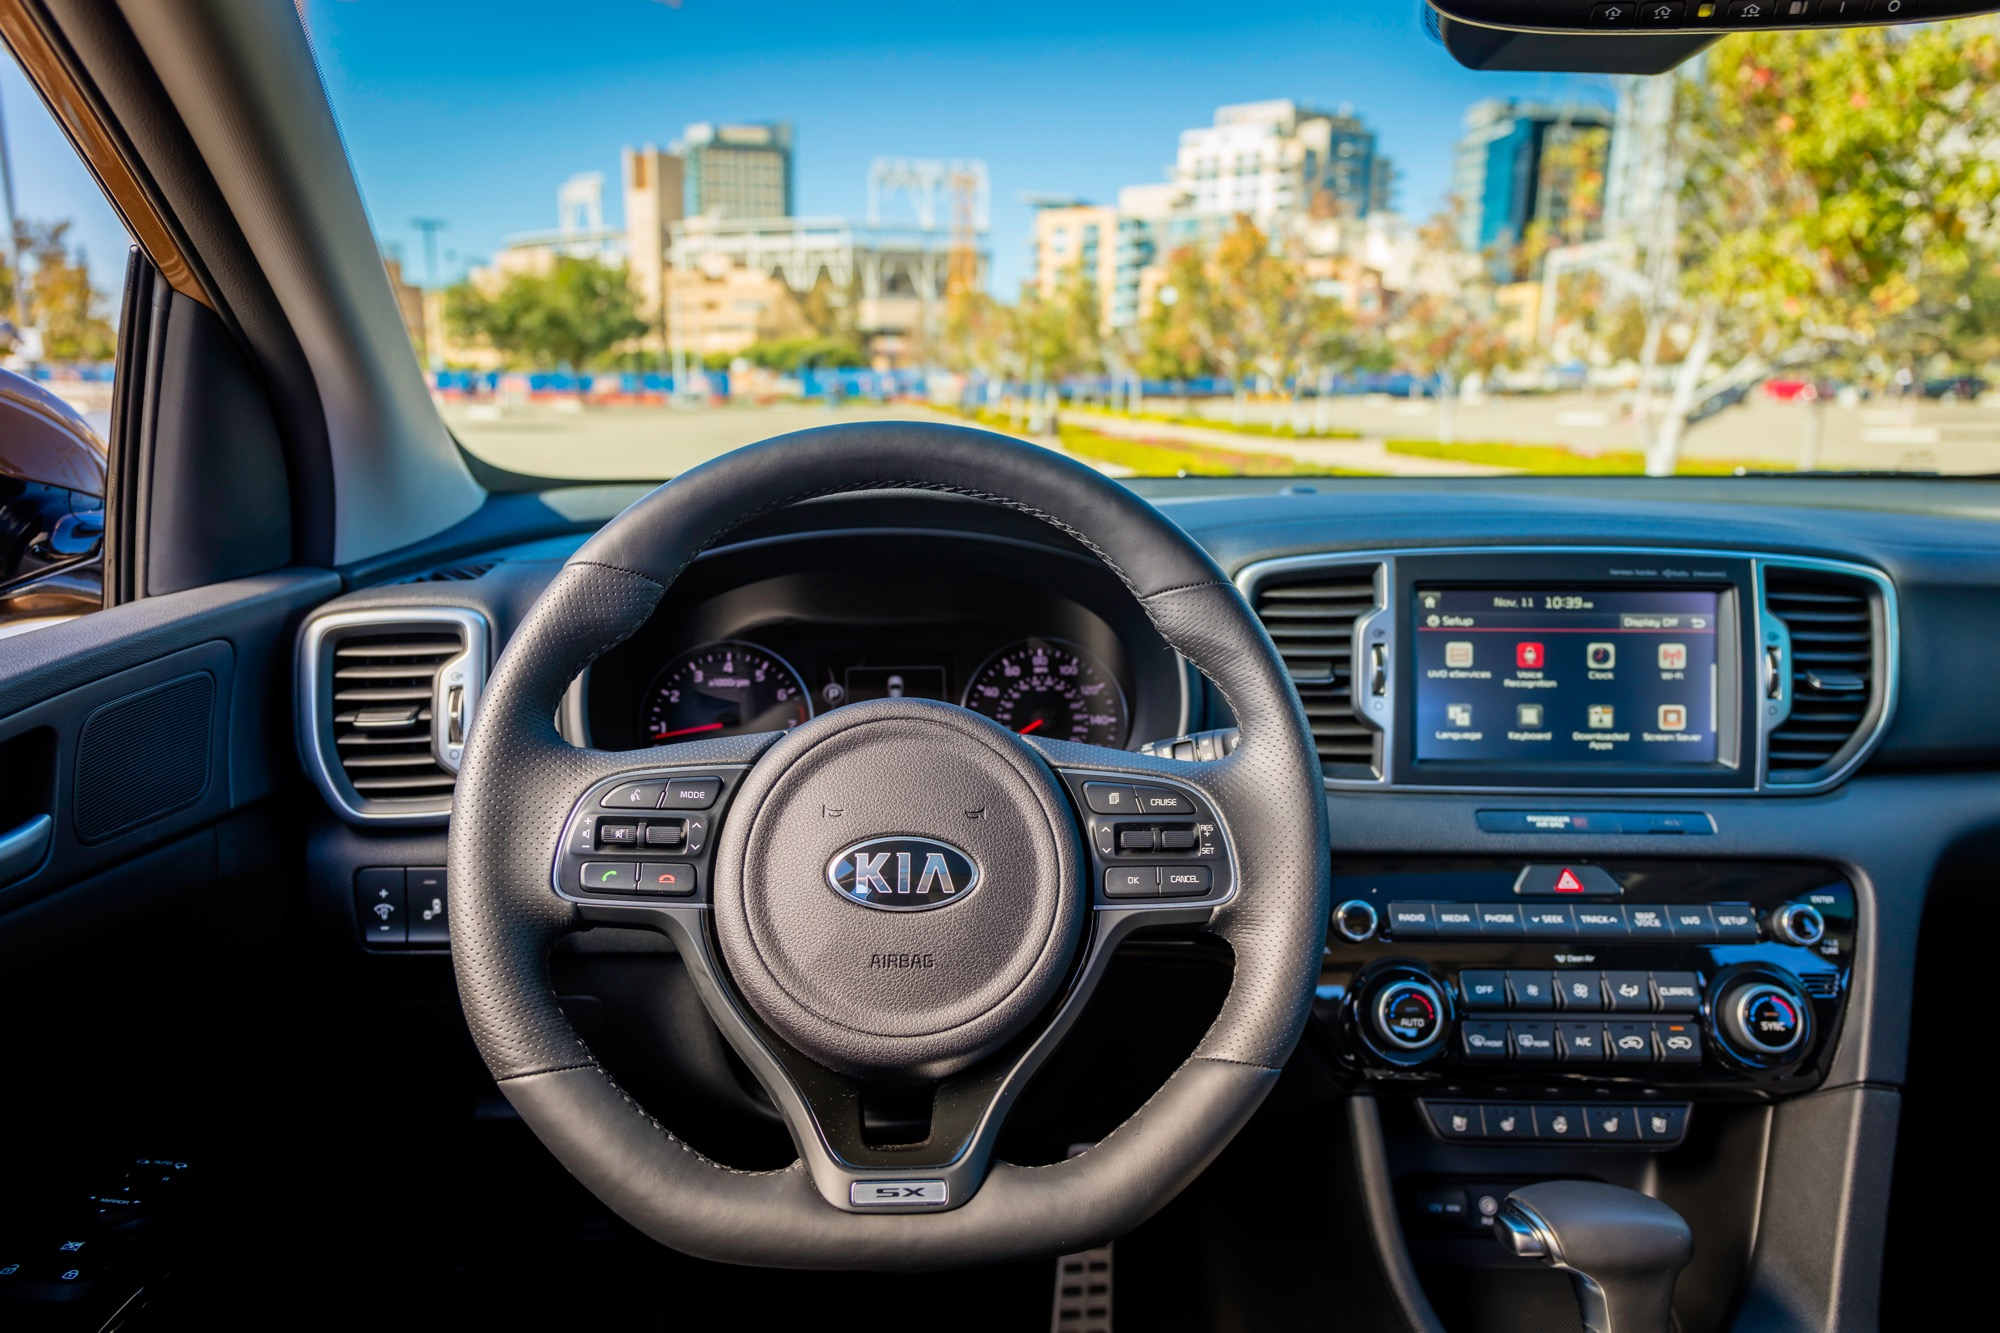 2017 kia sportage review for Interior kia sportage